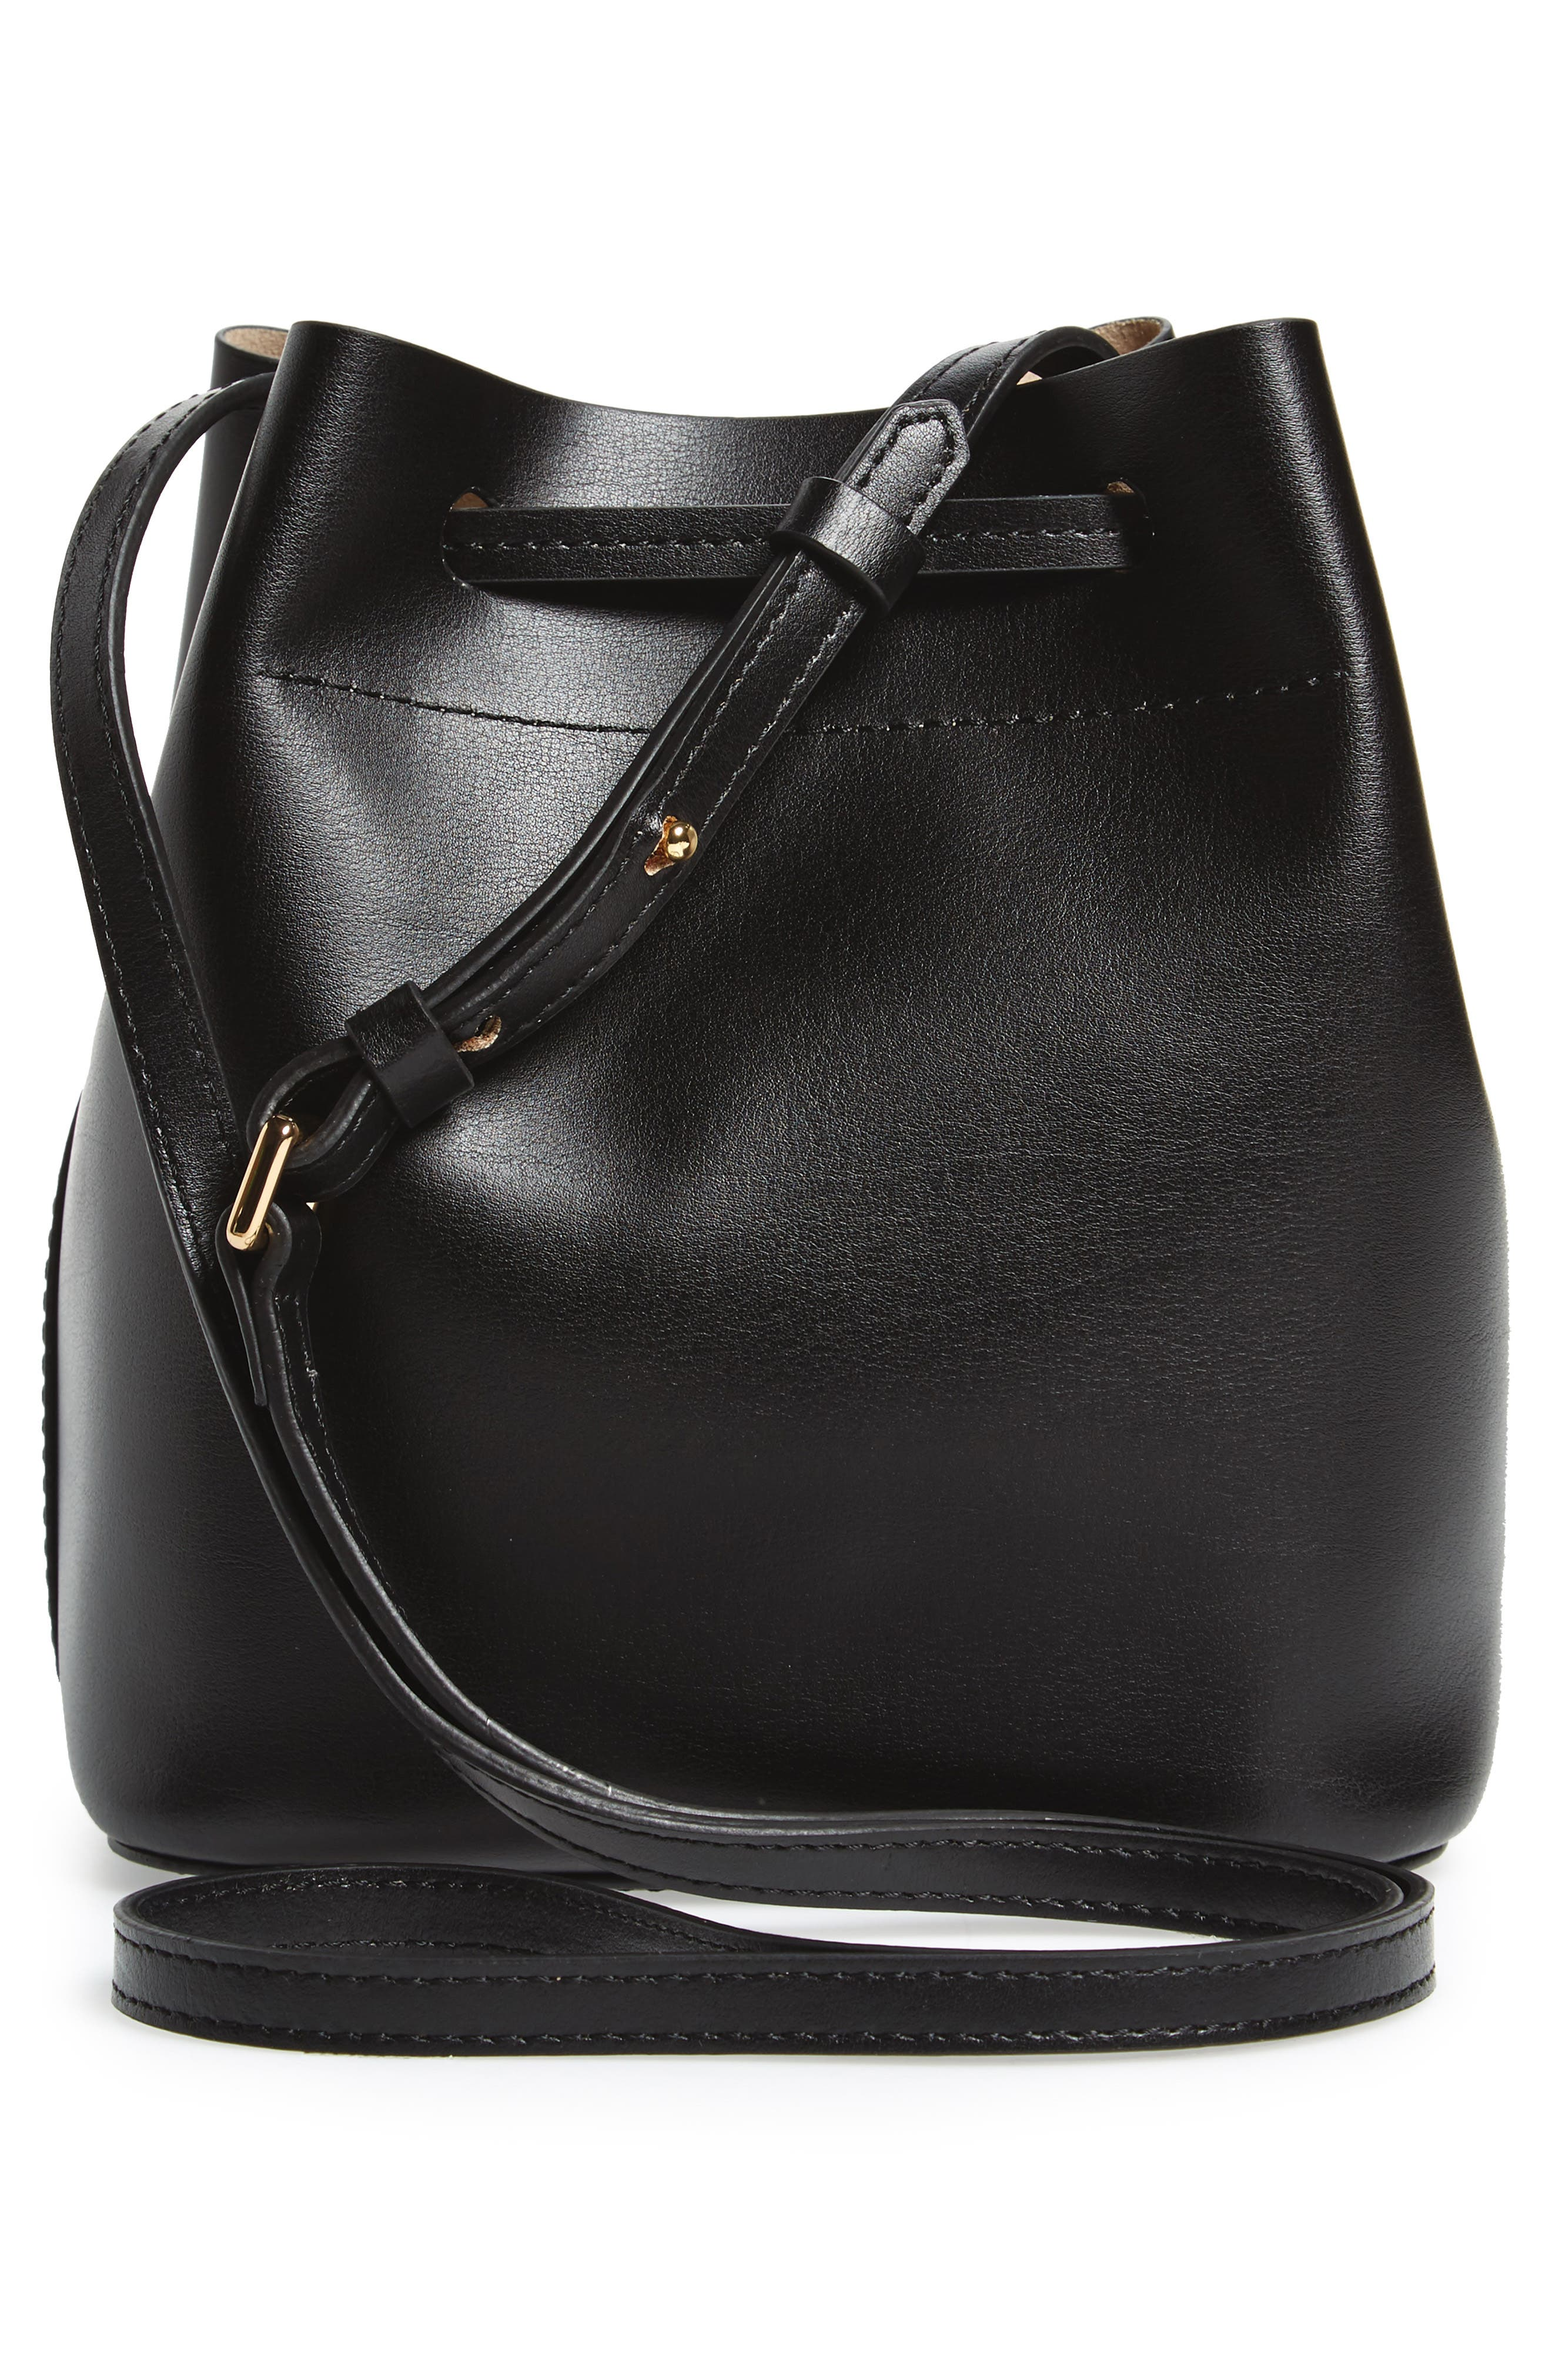 LODIS Small Silicon Valley Blake RFID Leather Bucket Bag,                             Alternate thumbnail 3, color,                             001